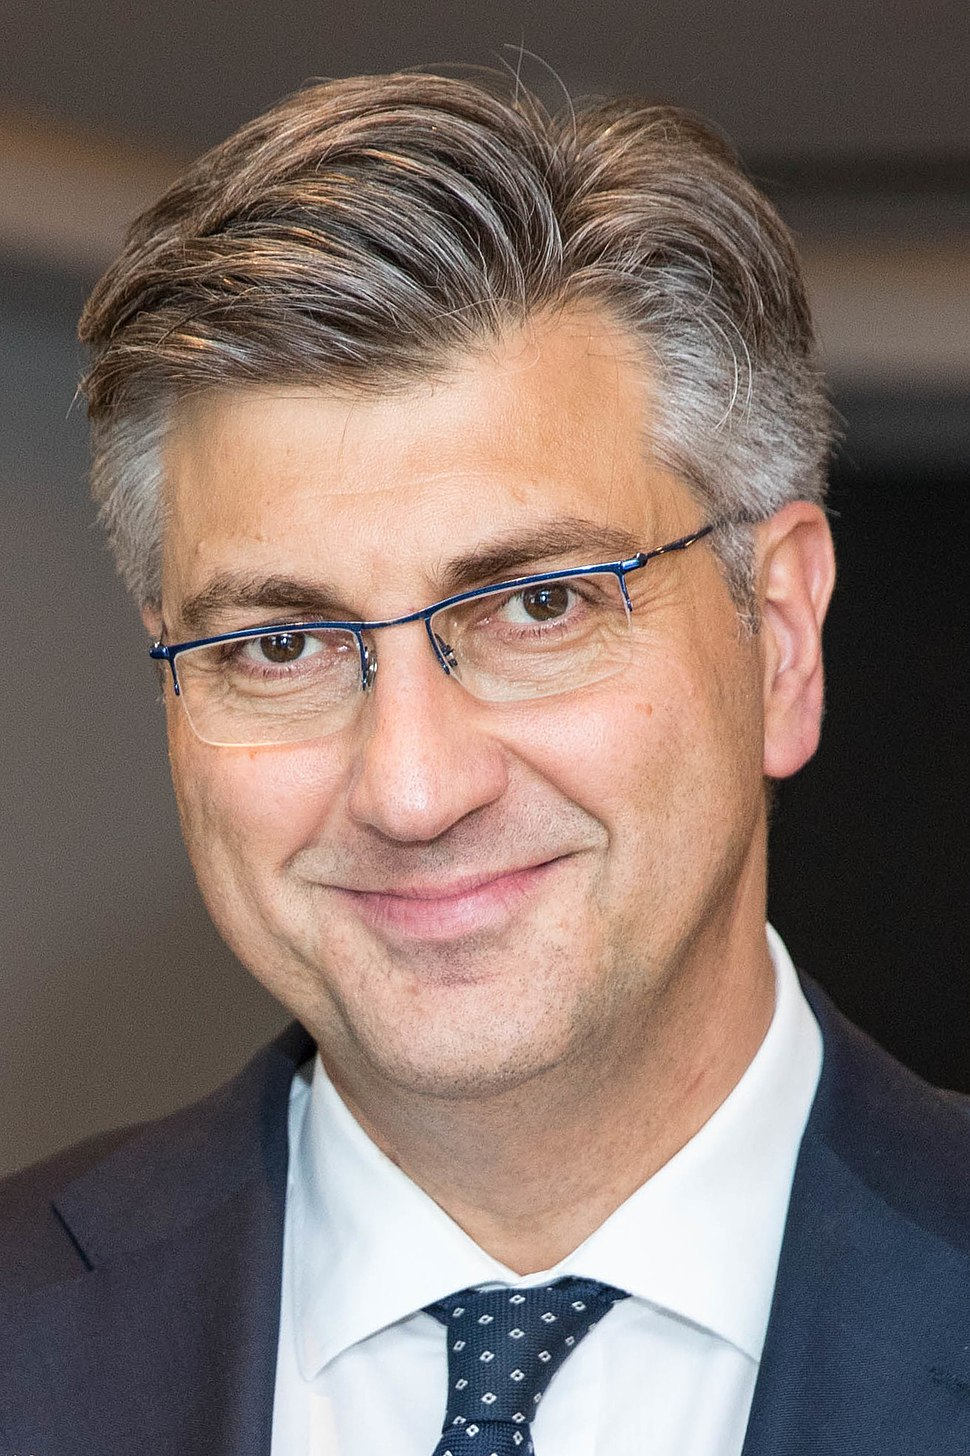 Andrej Plenković 2019 (cropped)